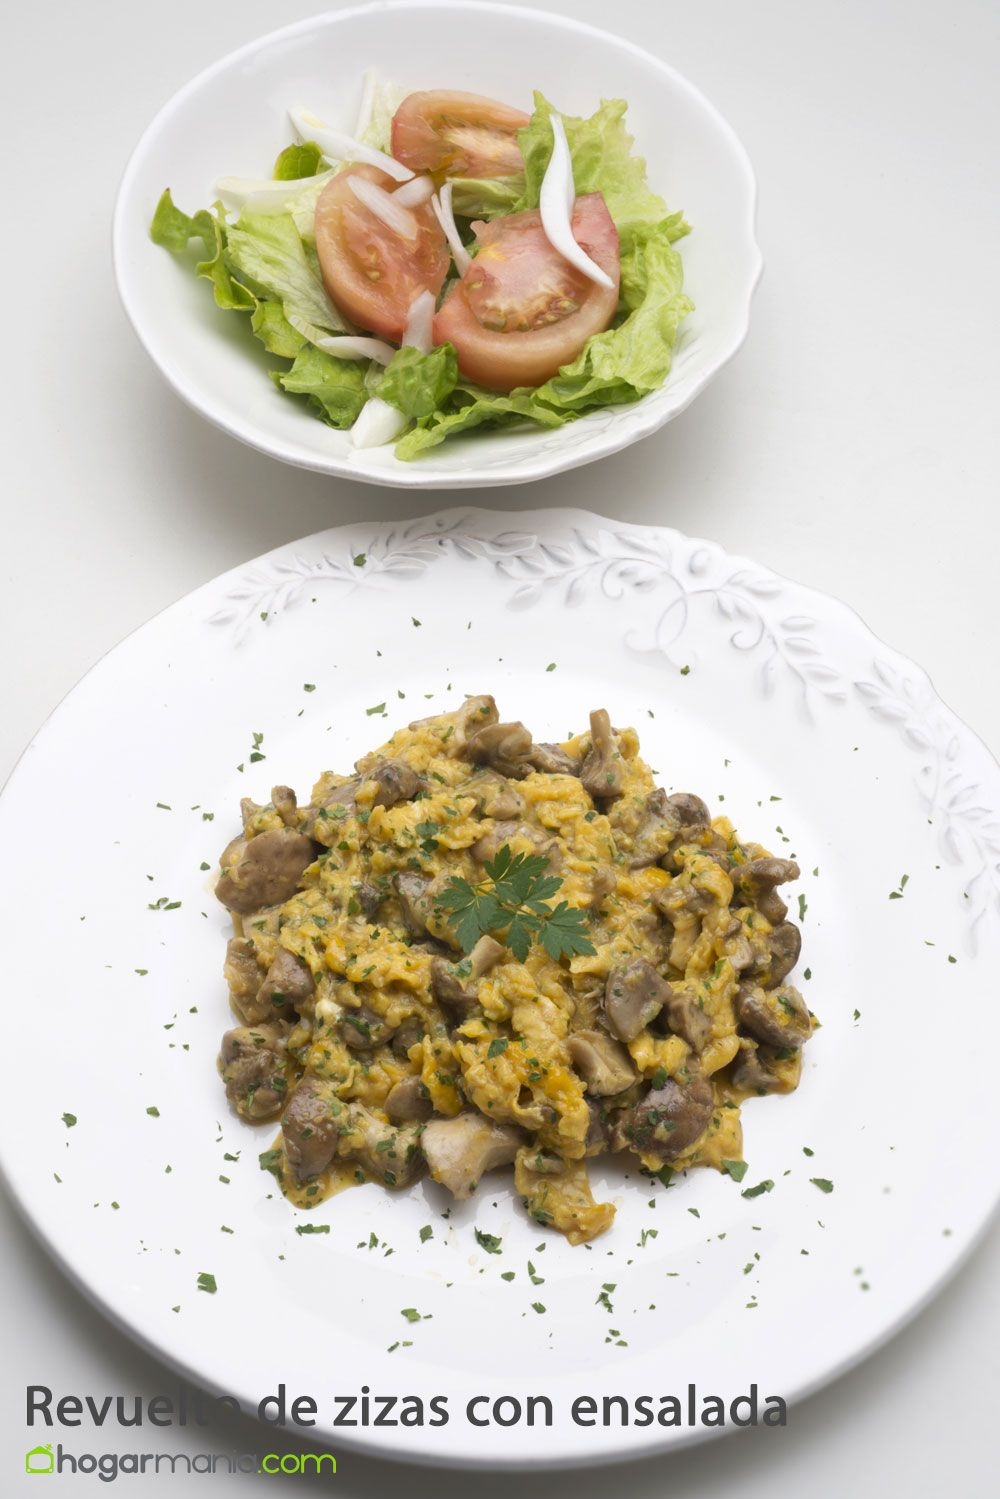 Scrambled eggs with zizi with salad